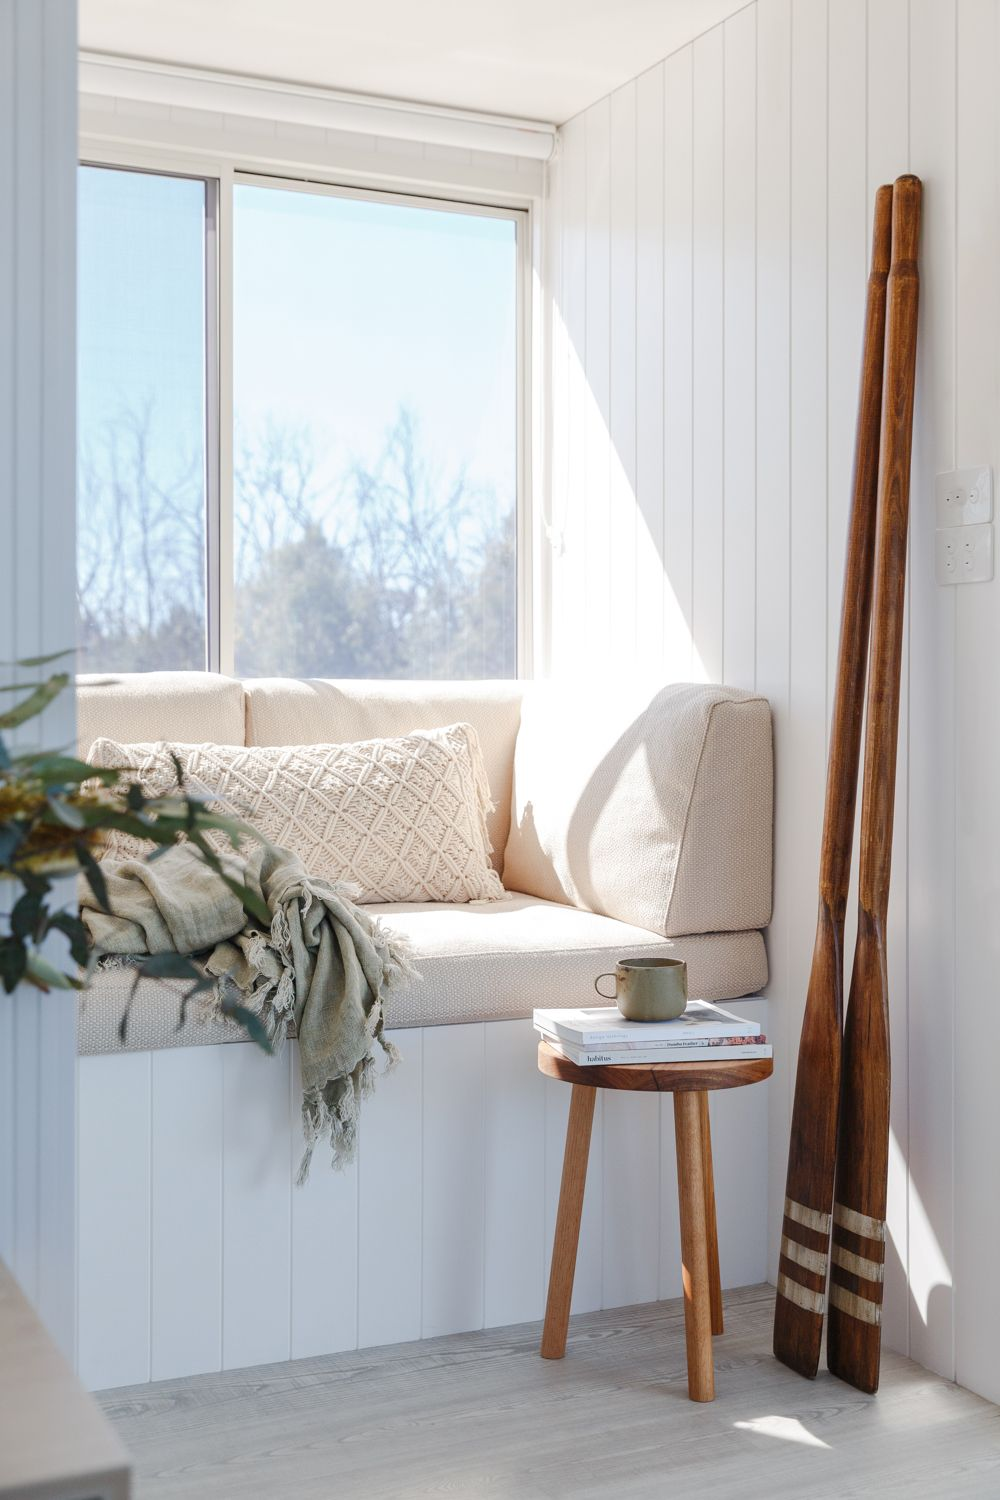 Window nook ideas  life in this renovated houseboat would be but a dream  reading